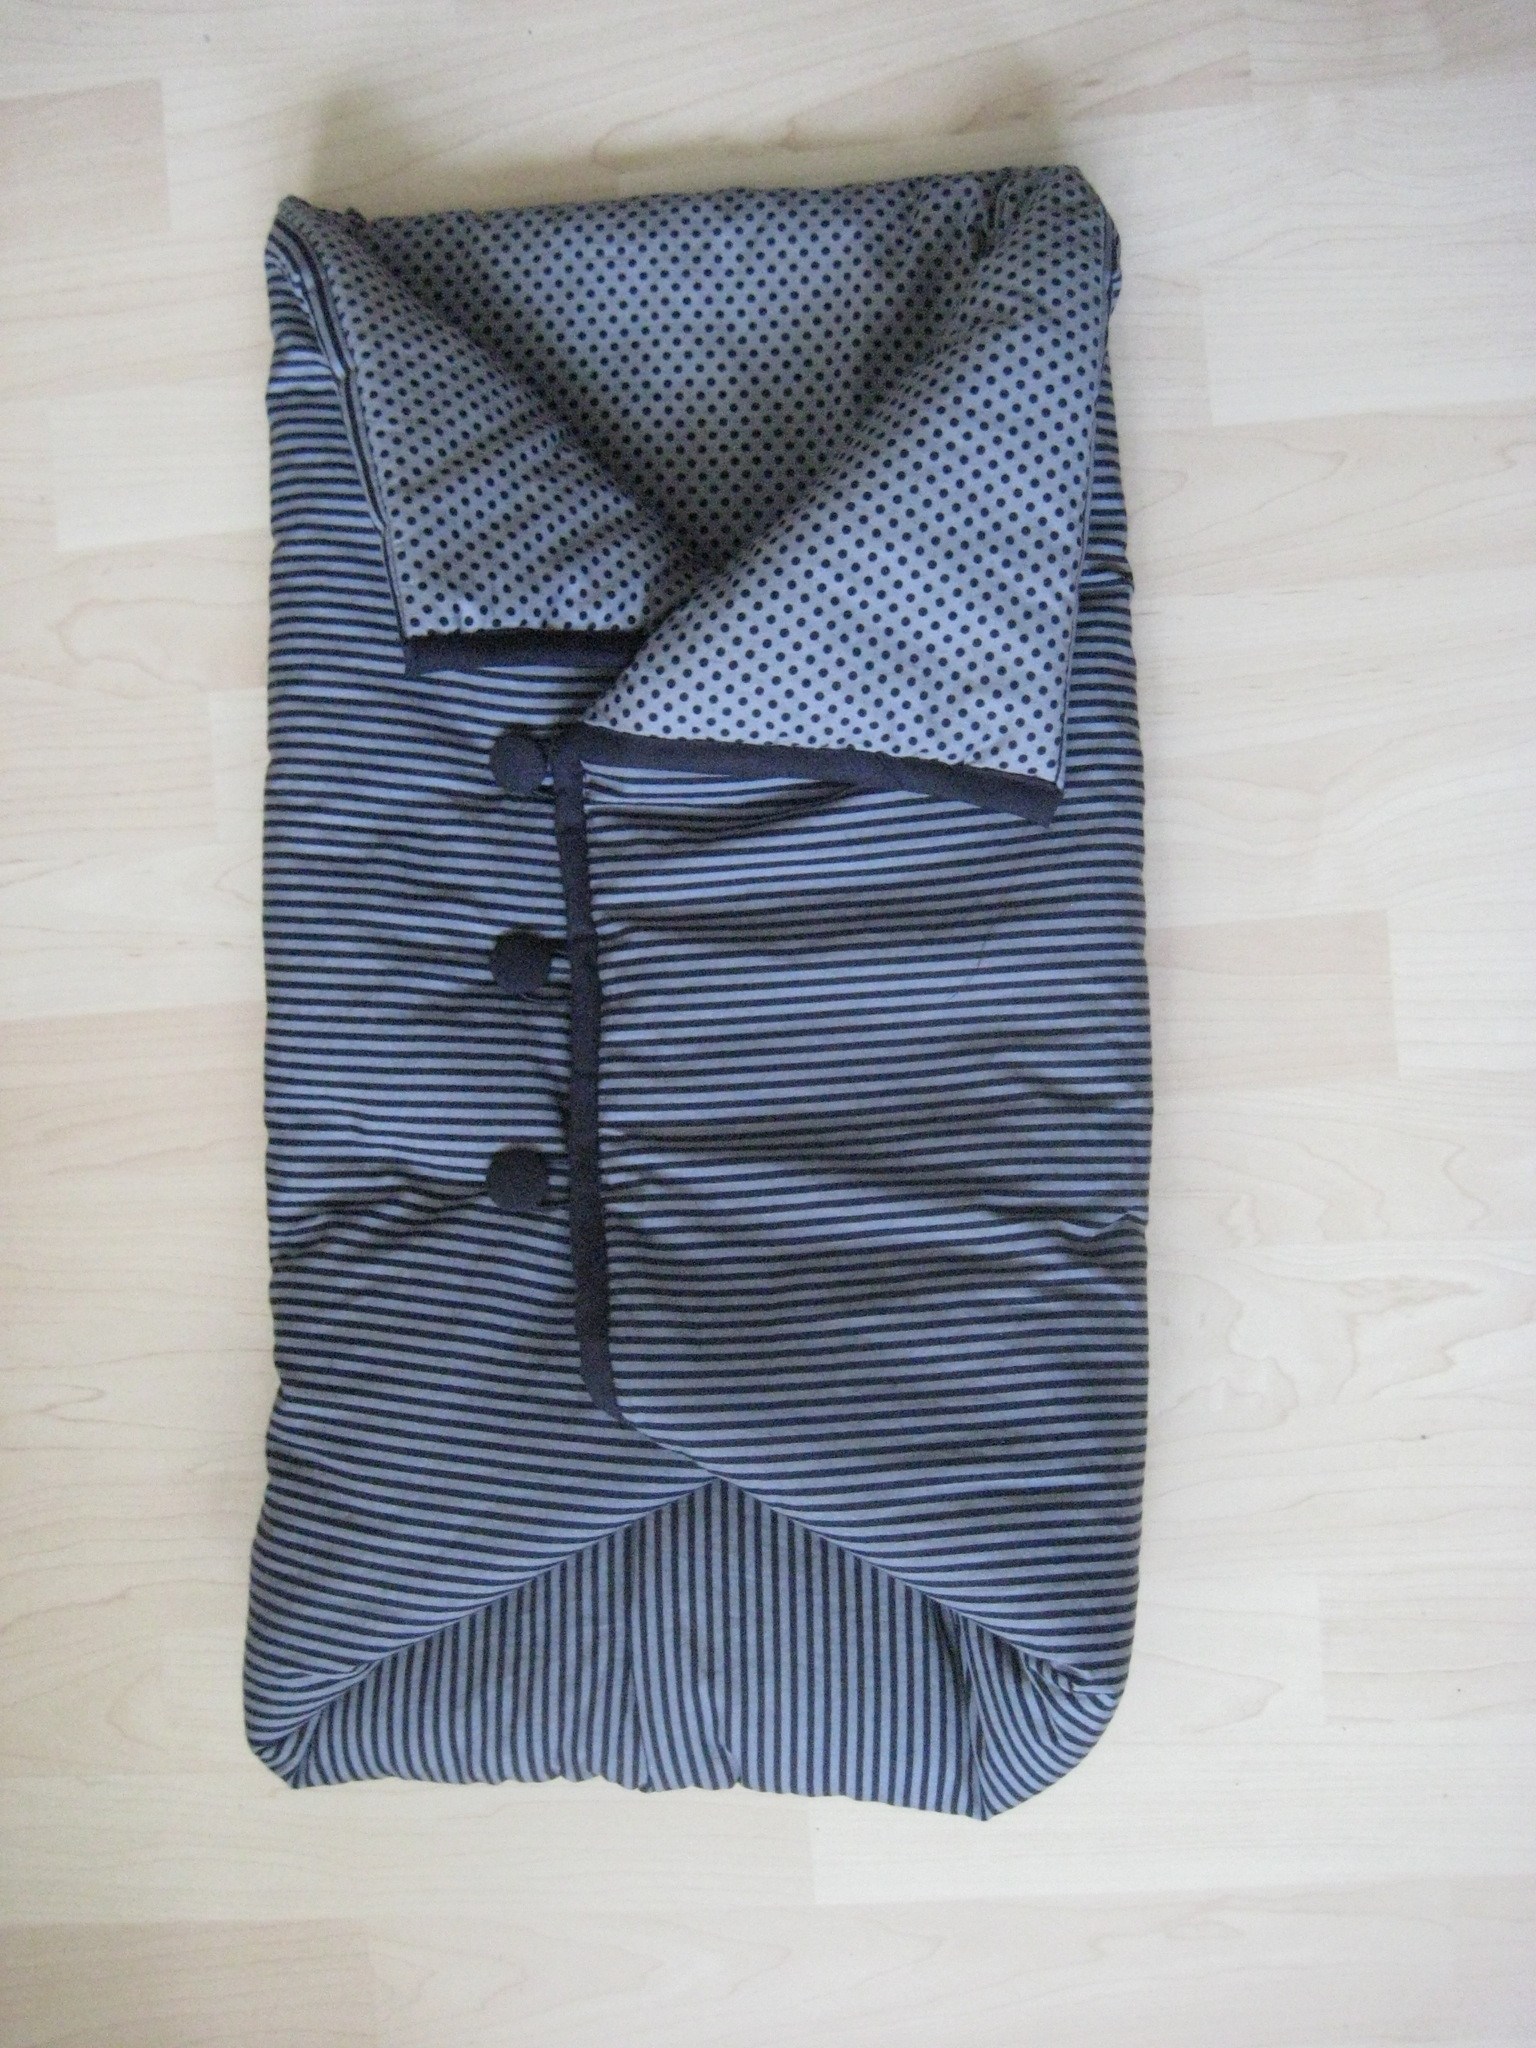 Sleeping bag – Sewing Projects